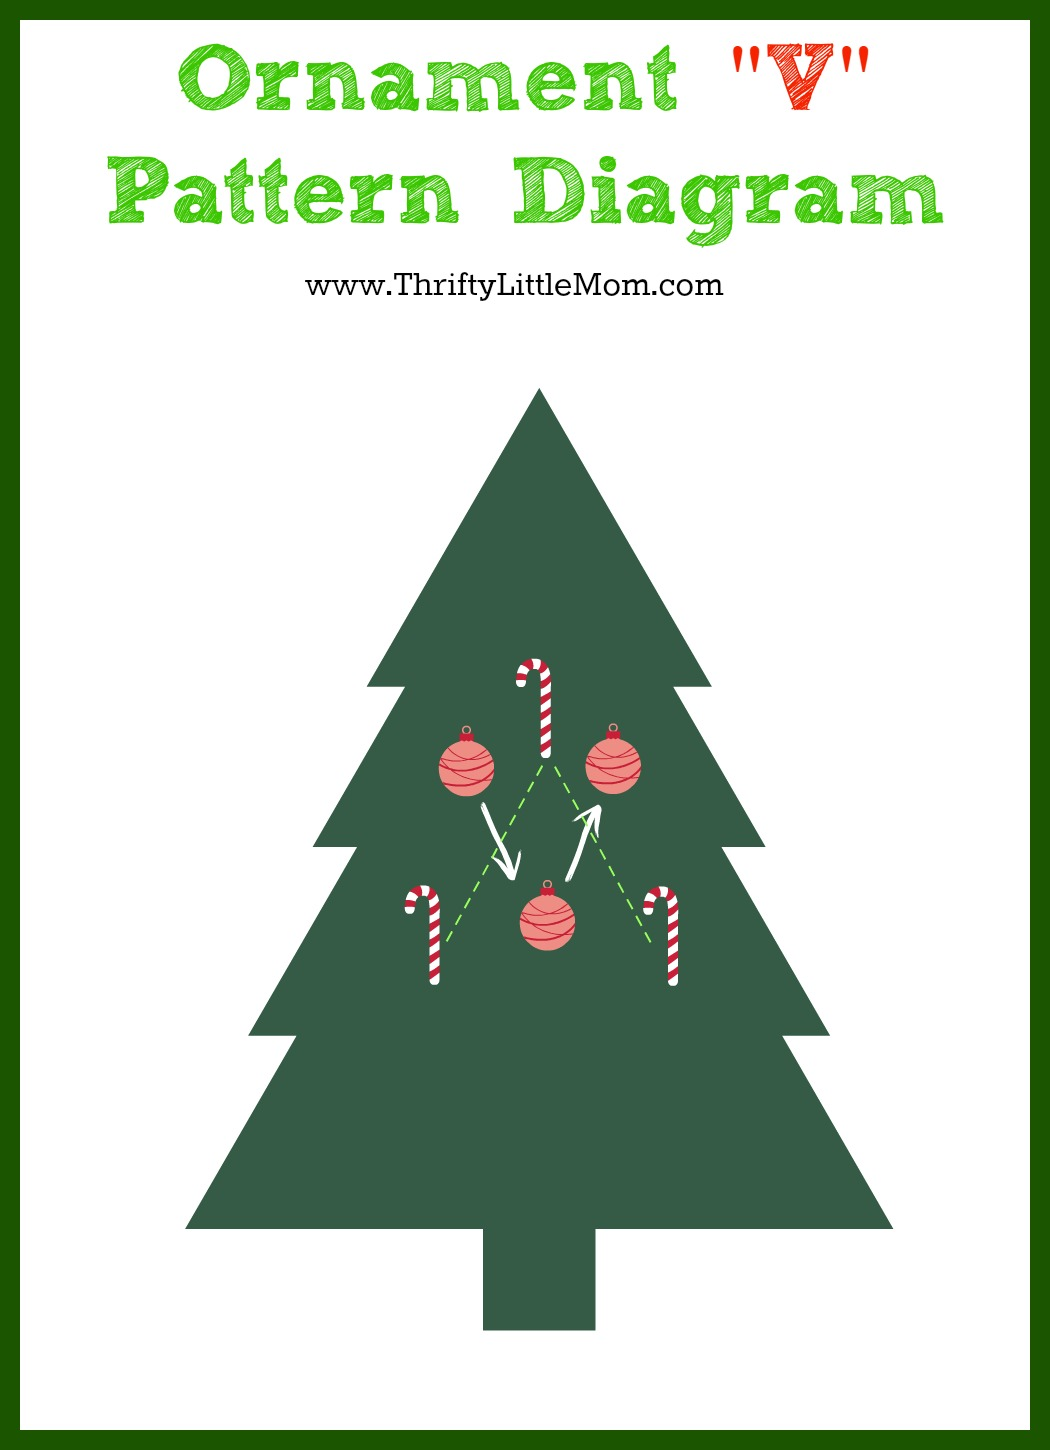 How To Trim Your Tree Like the Magazines Ornament Pattern